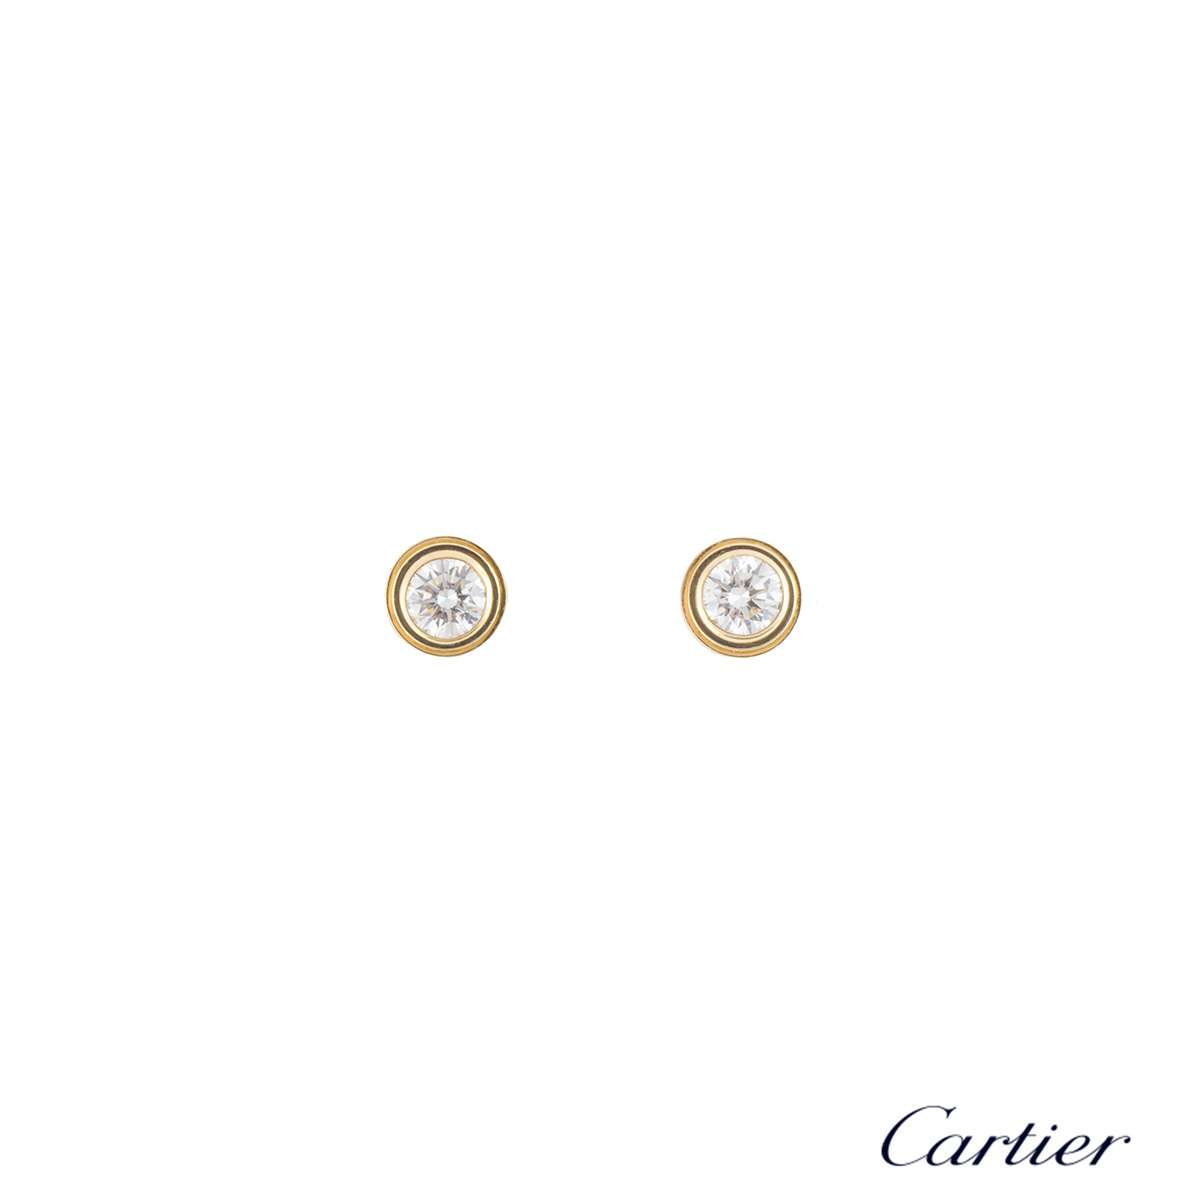 Cartier Yellow Gold Legers Diamond Earrings B8041600